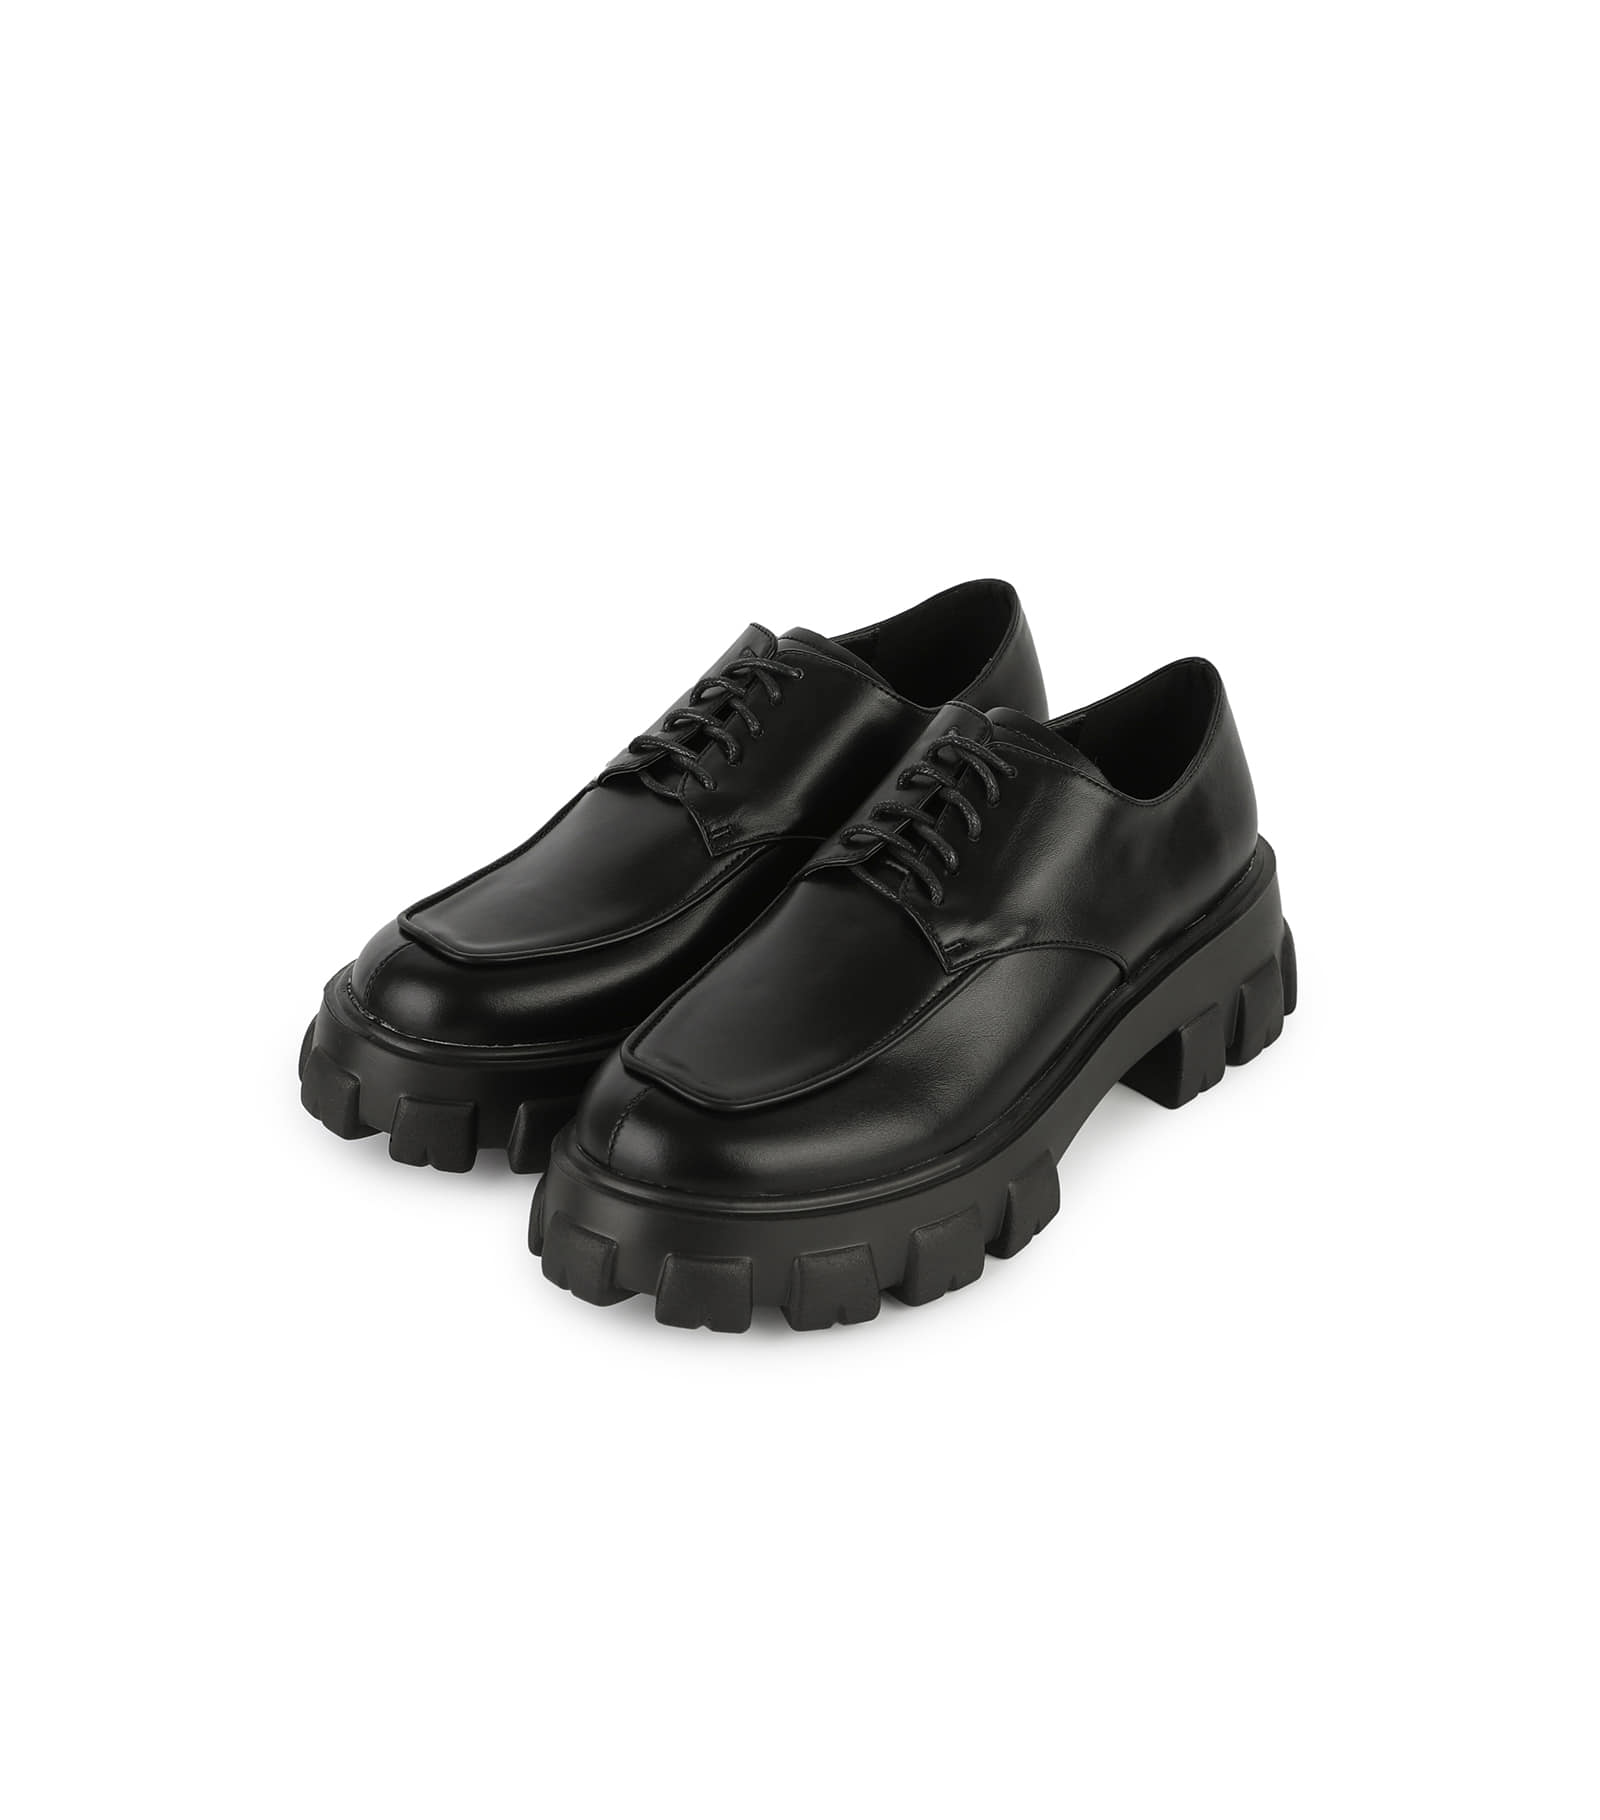 Fuzzy lace-up loafers